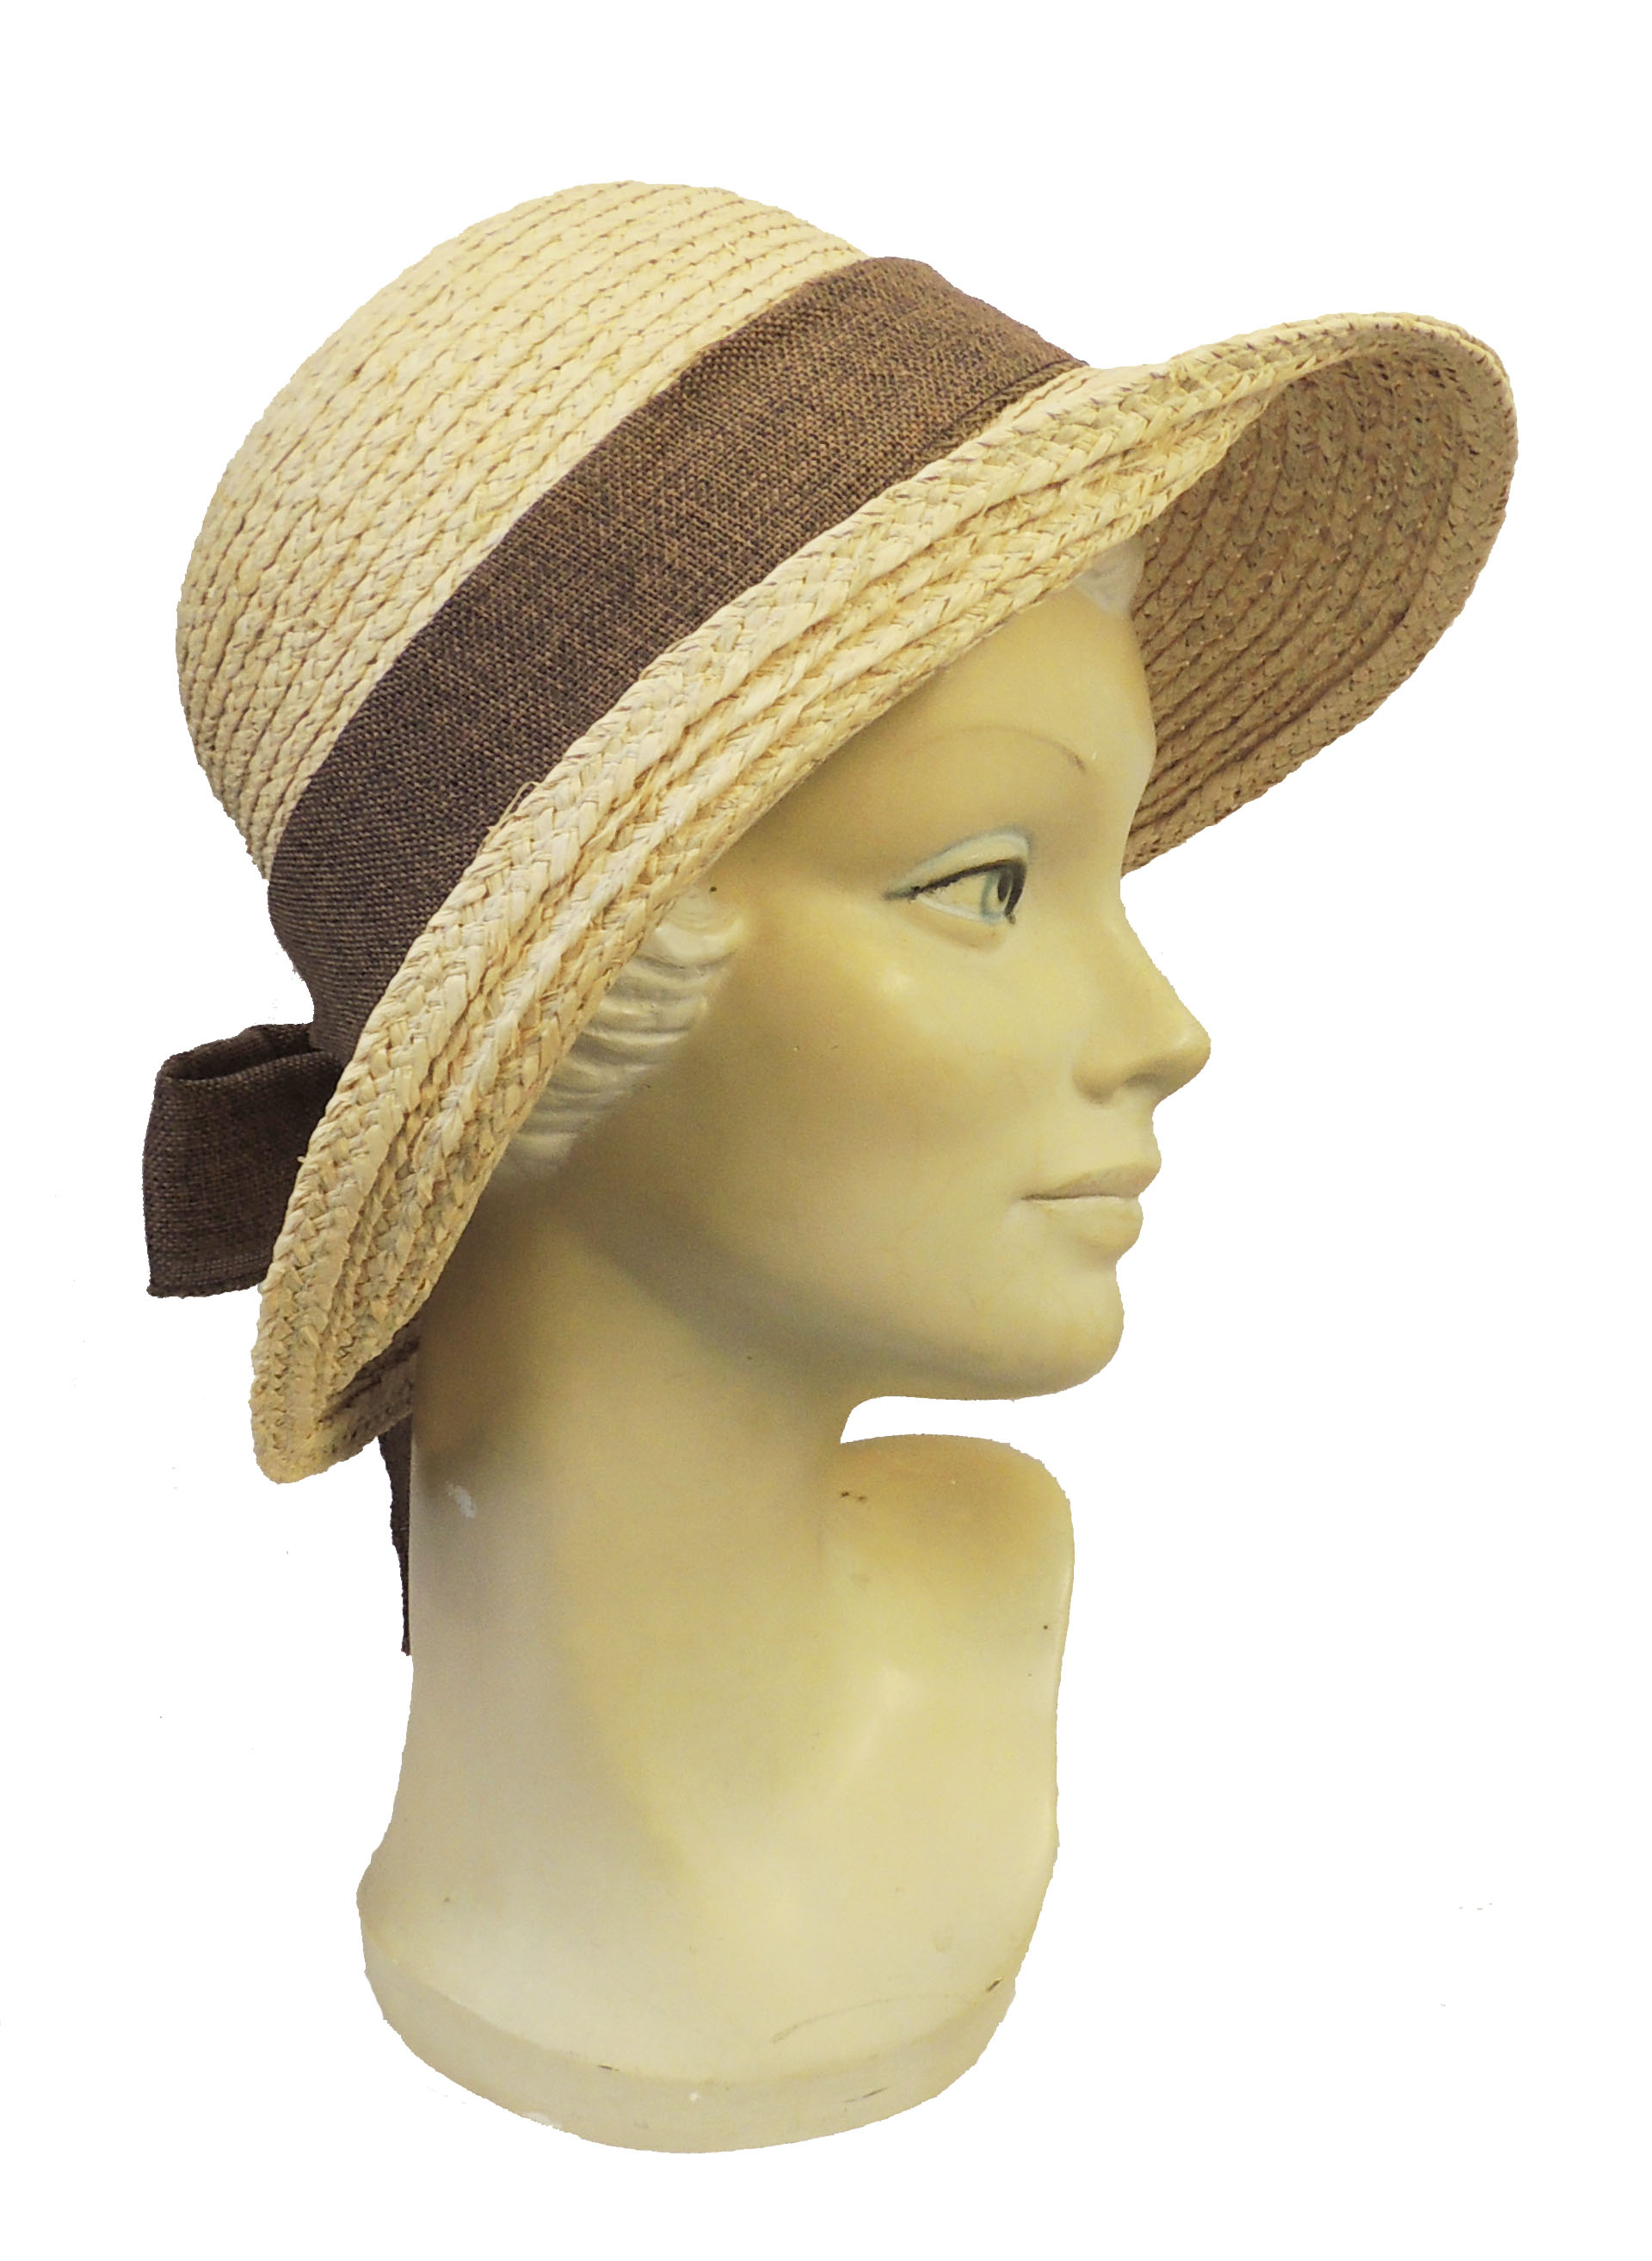 1940s Dresses and Clothing UK | 40s Shoes UK    New Retro Wide Brim Raffia Summer Sun Hat 1920s 1940s Style with Brown Trim $14.95 AT vintagedancer.com